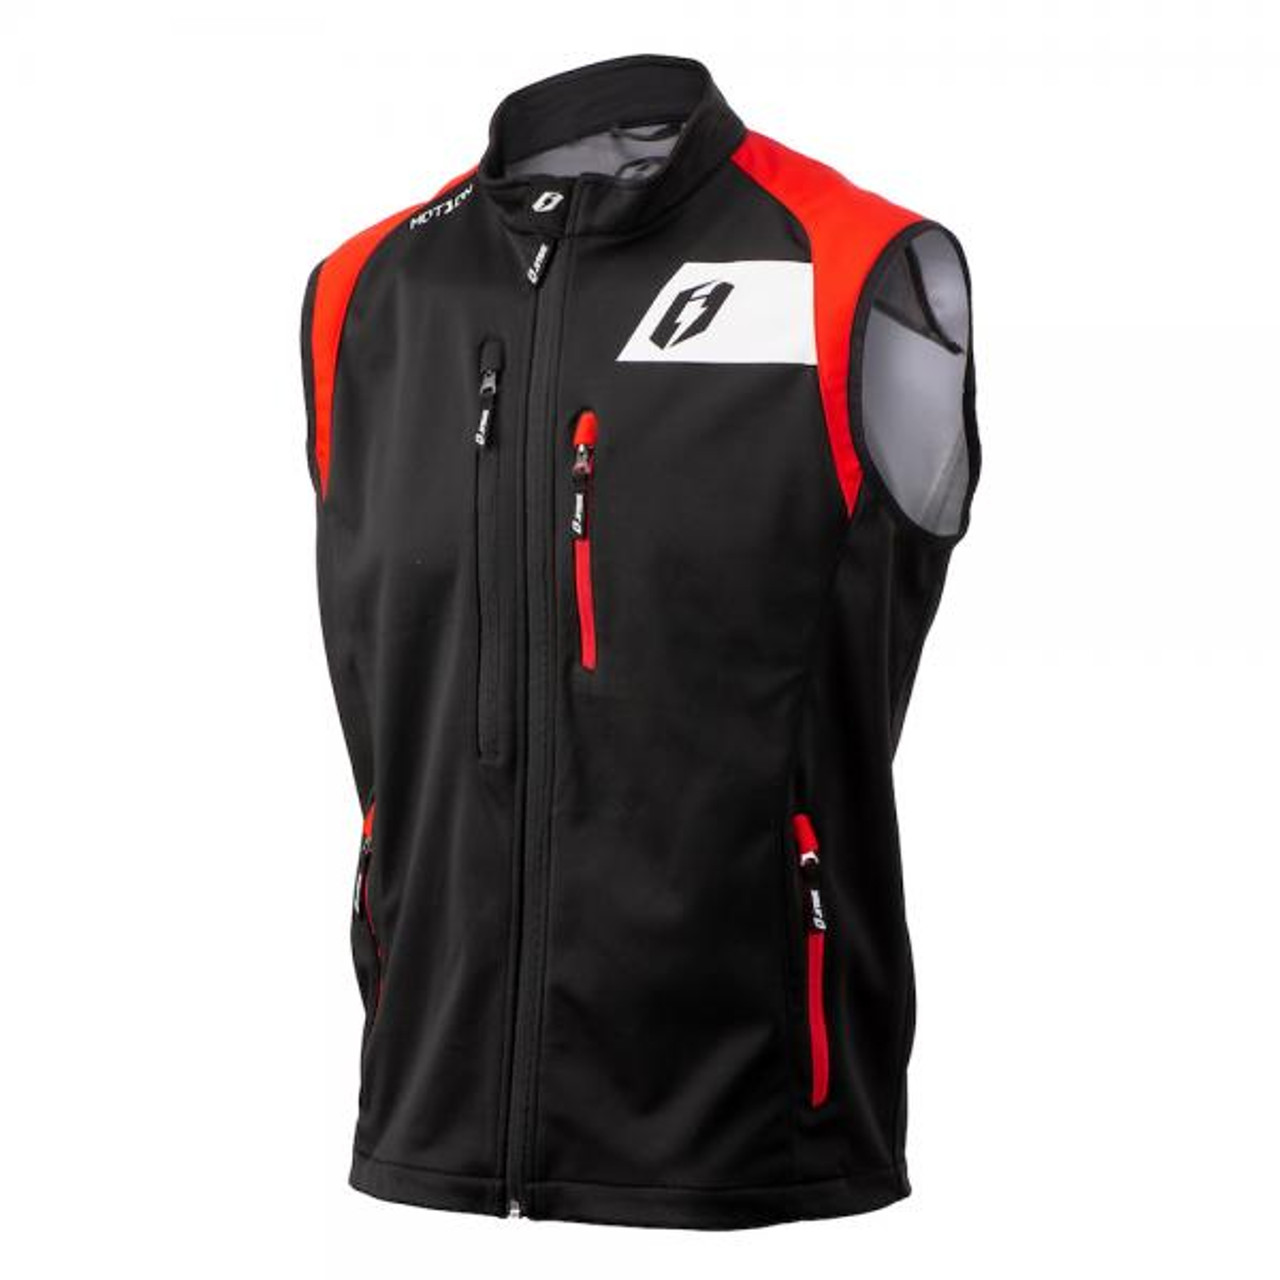 Jitsie Motion gilet vest jacket cold weather jacket for trials in water repellent and breathable fabrics.